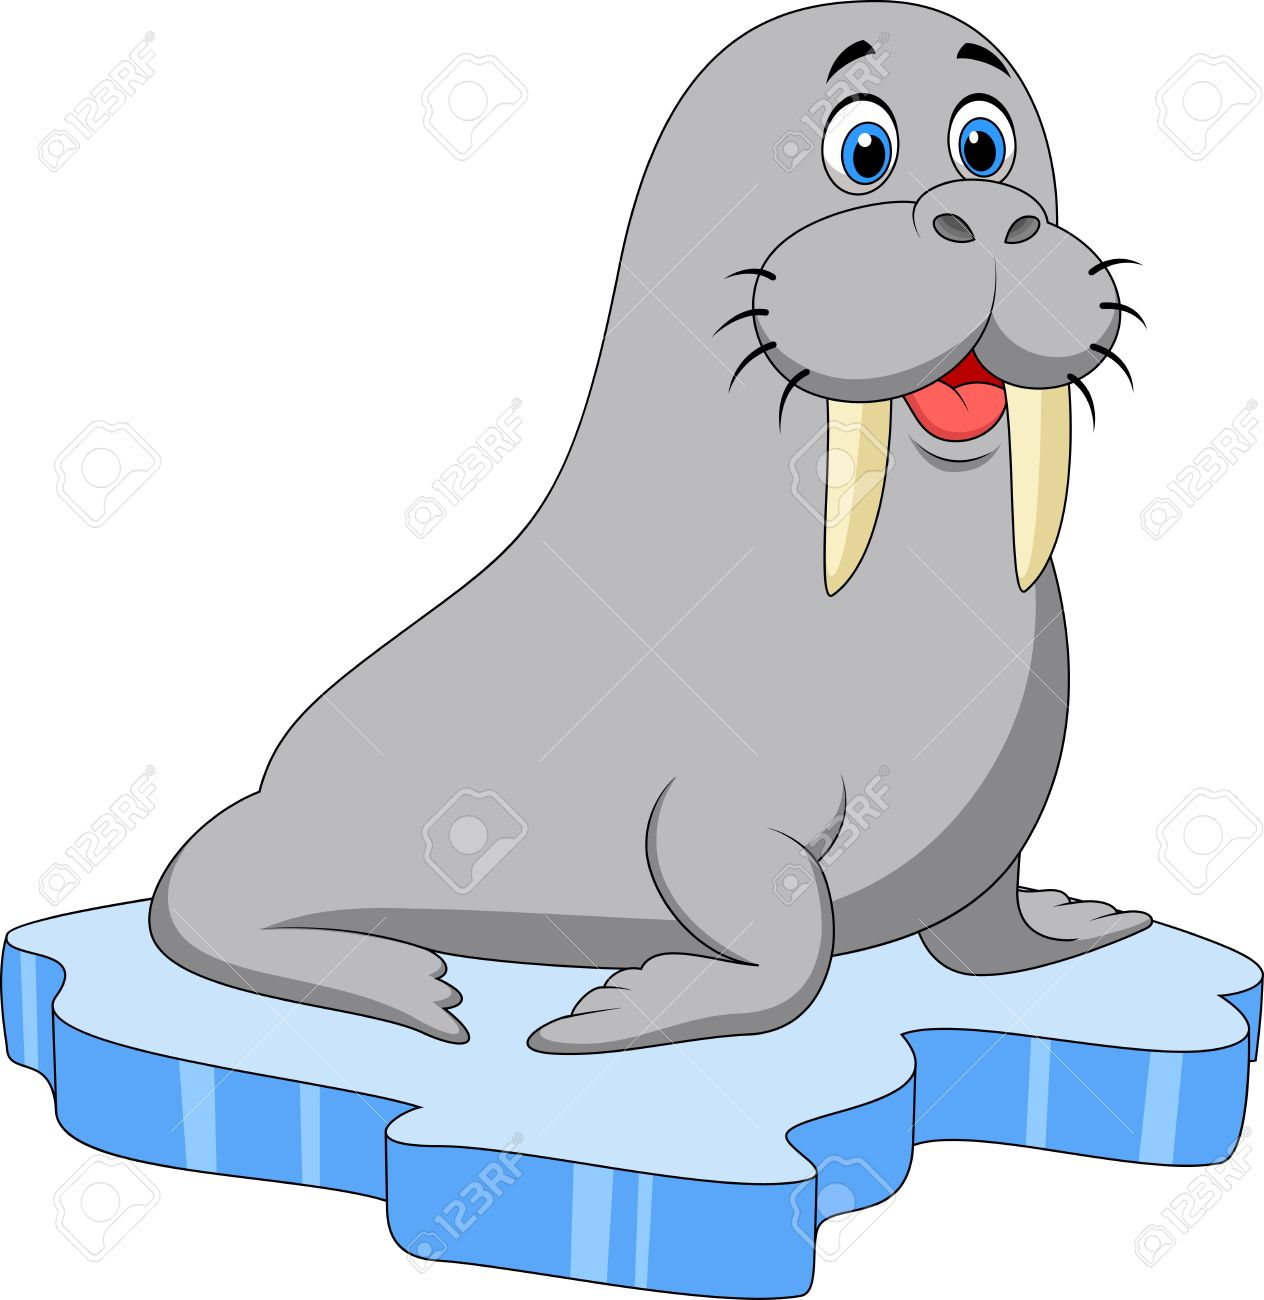 cute walrus cartoon on ice royalty free cliparts vectors and stock rh 123rf com Whale Clip Art Whale Clip Art